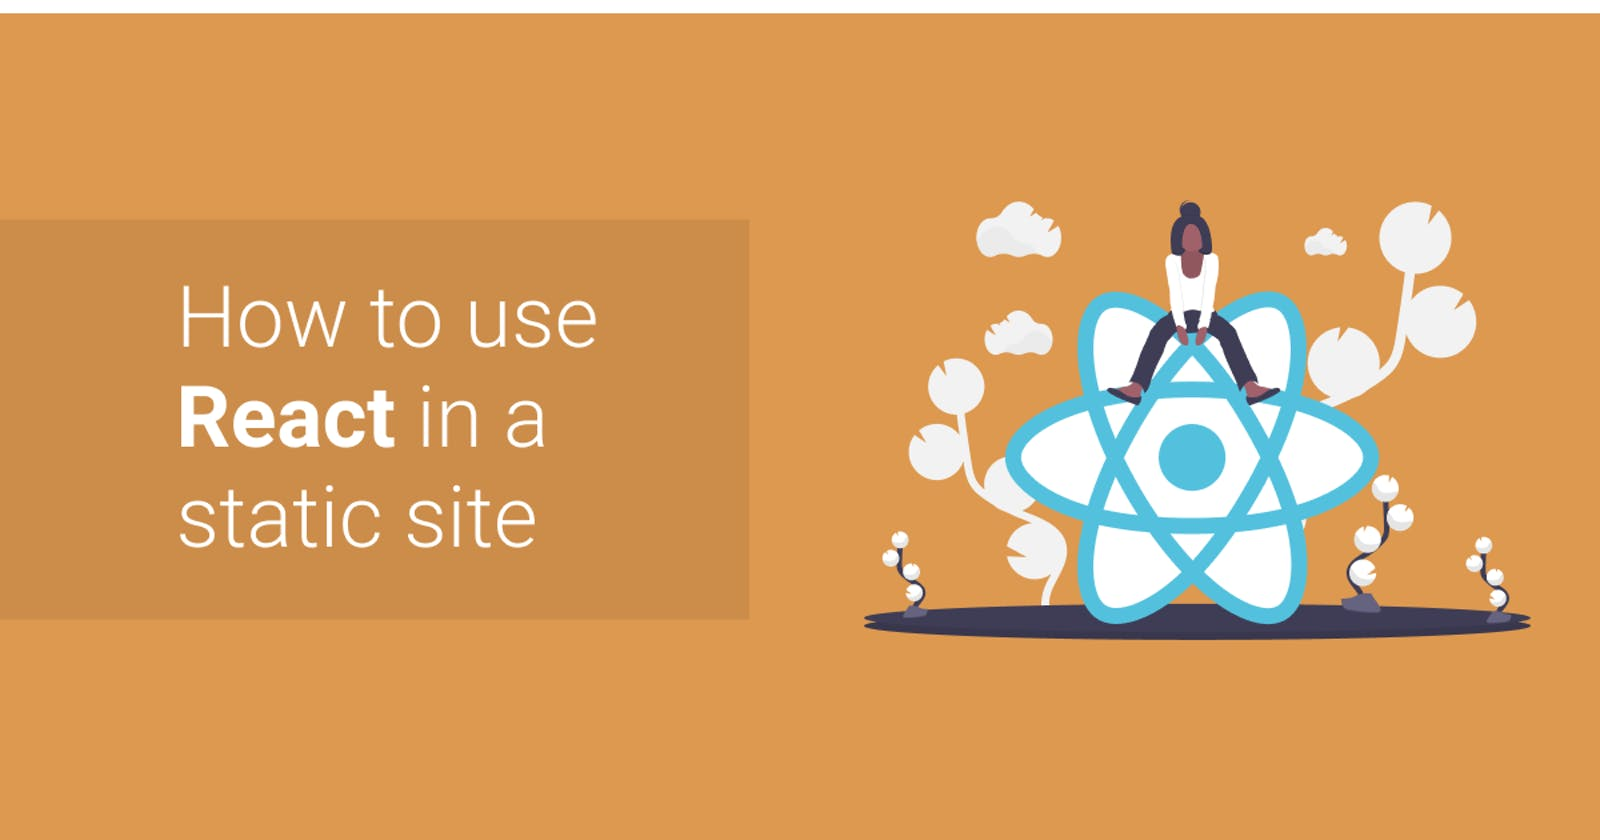 How to use React in a static site